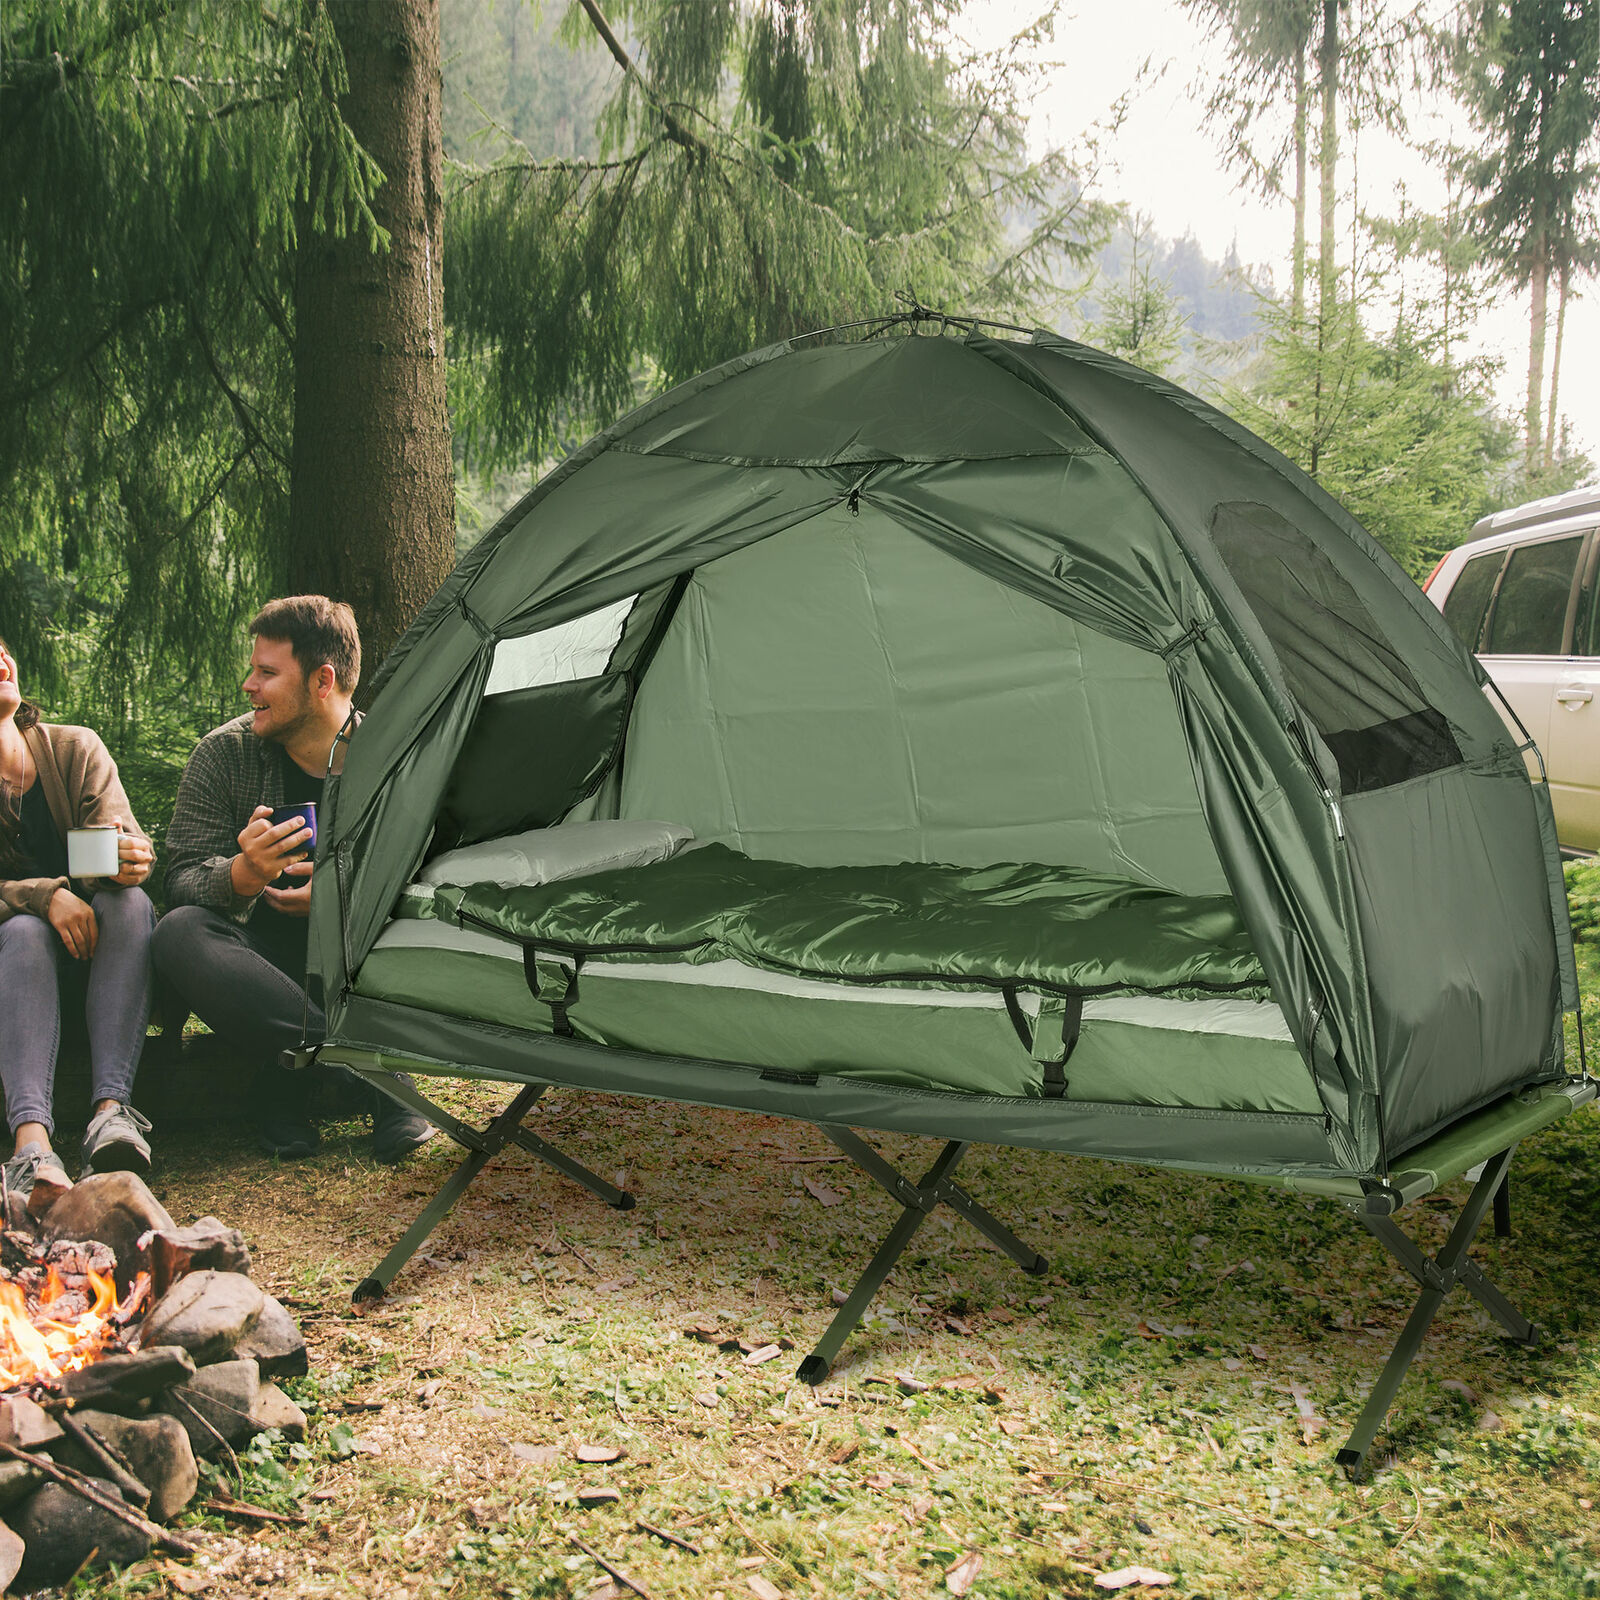 What to buy a tent and sleeping bag for a novice 29